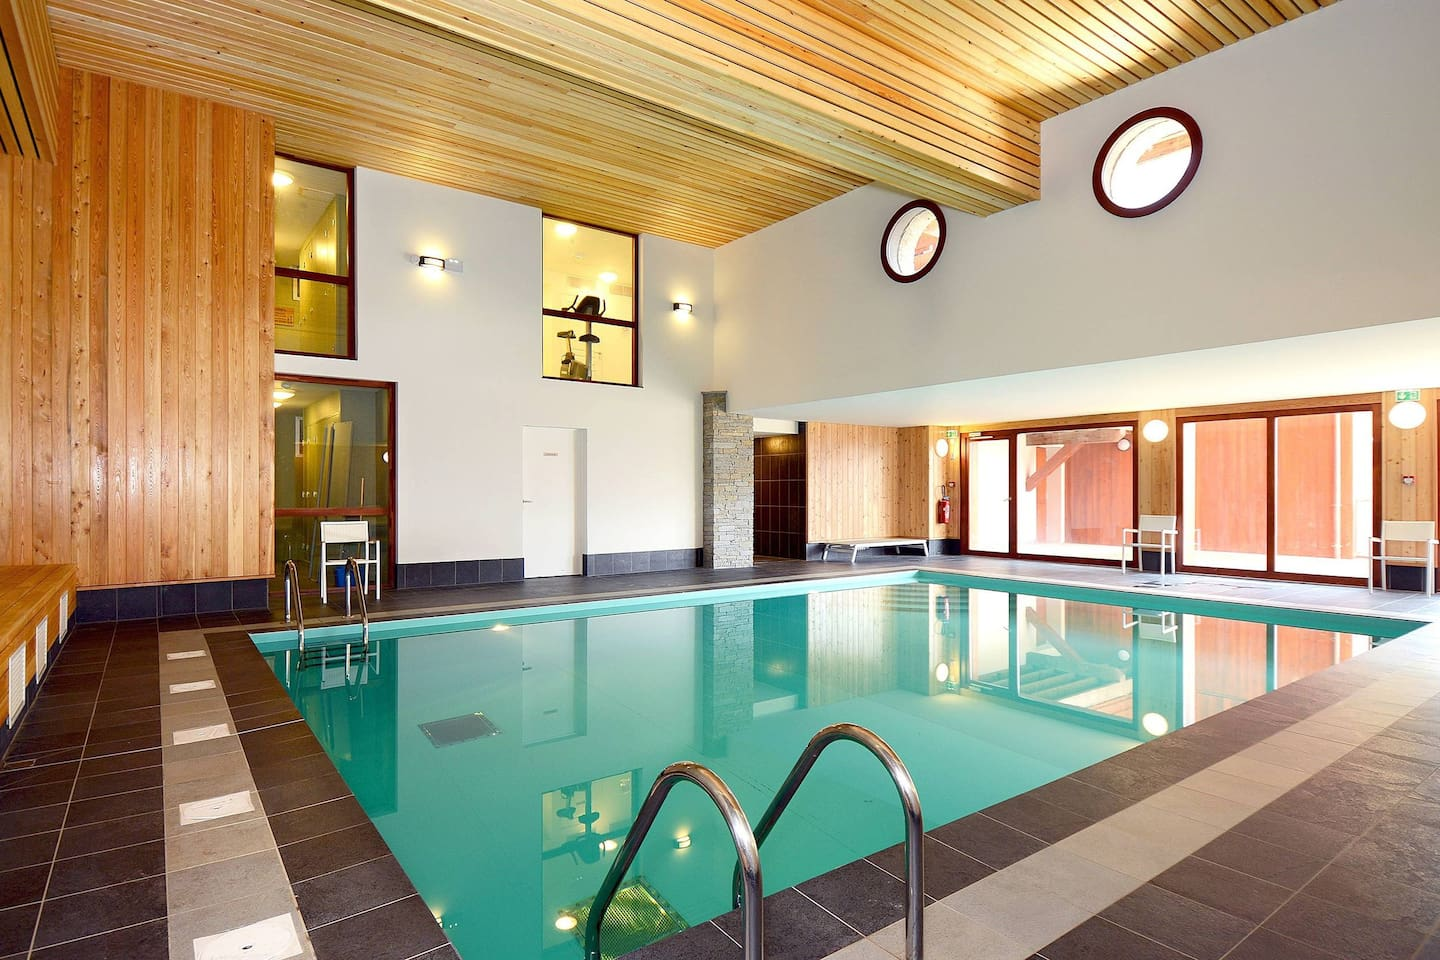 Dive into the indoor heated pool!